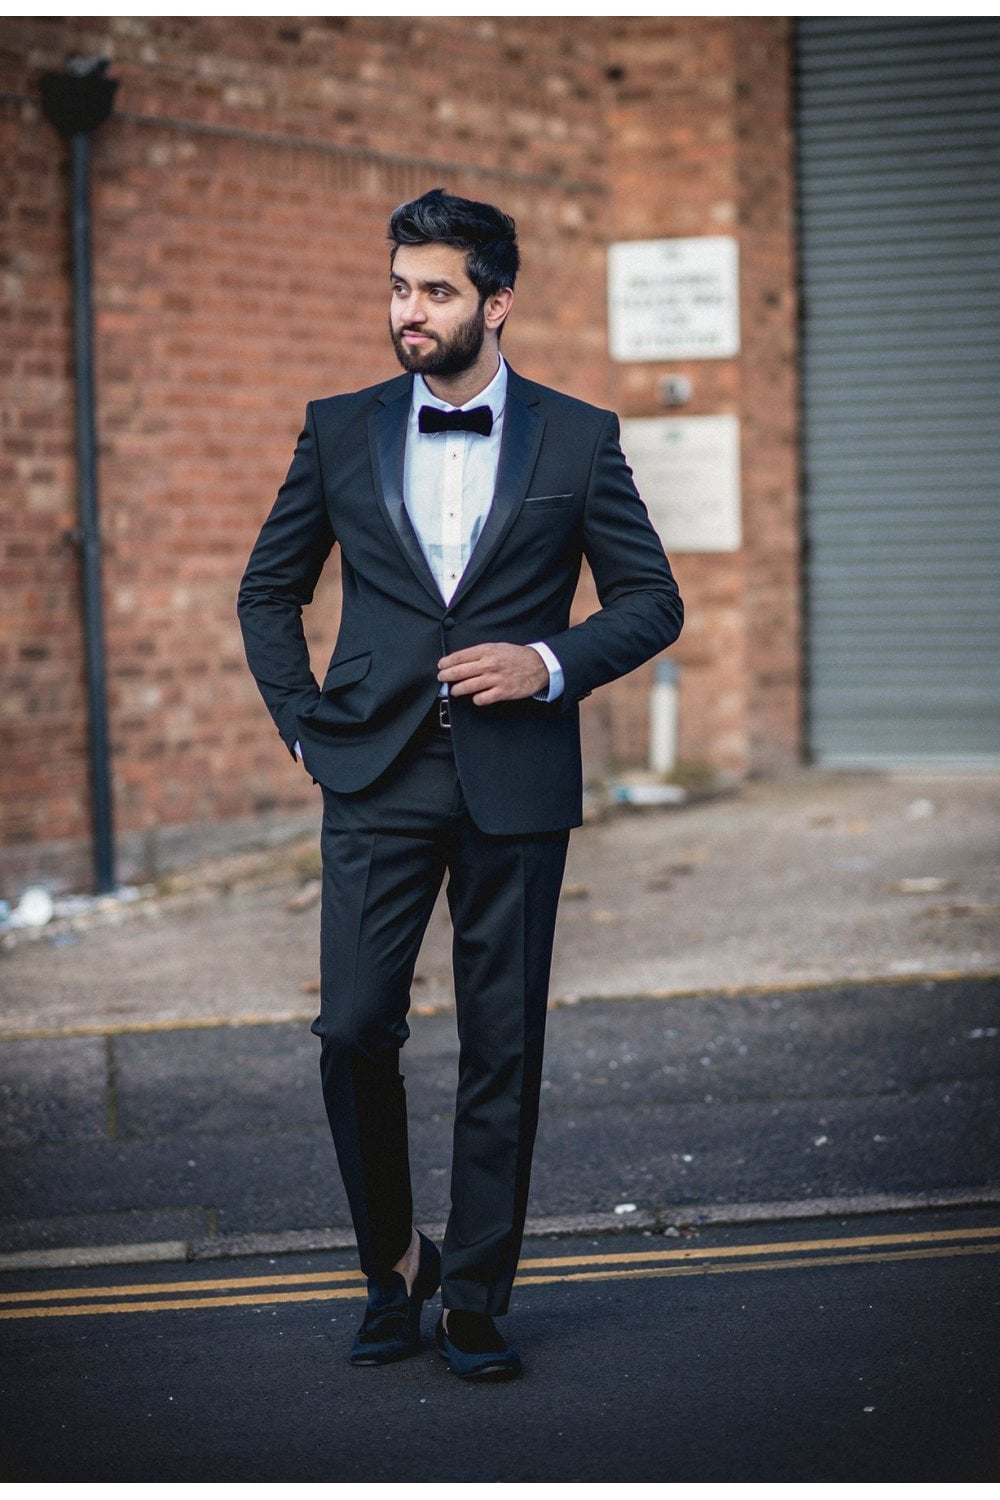 Cavani Tuxedo Two Piece Suit Suits From Hotspur 1364 Ltd Uk